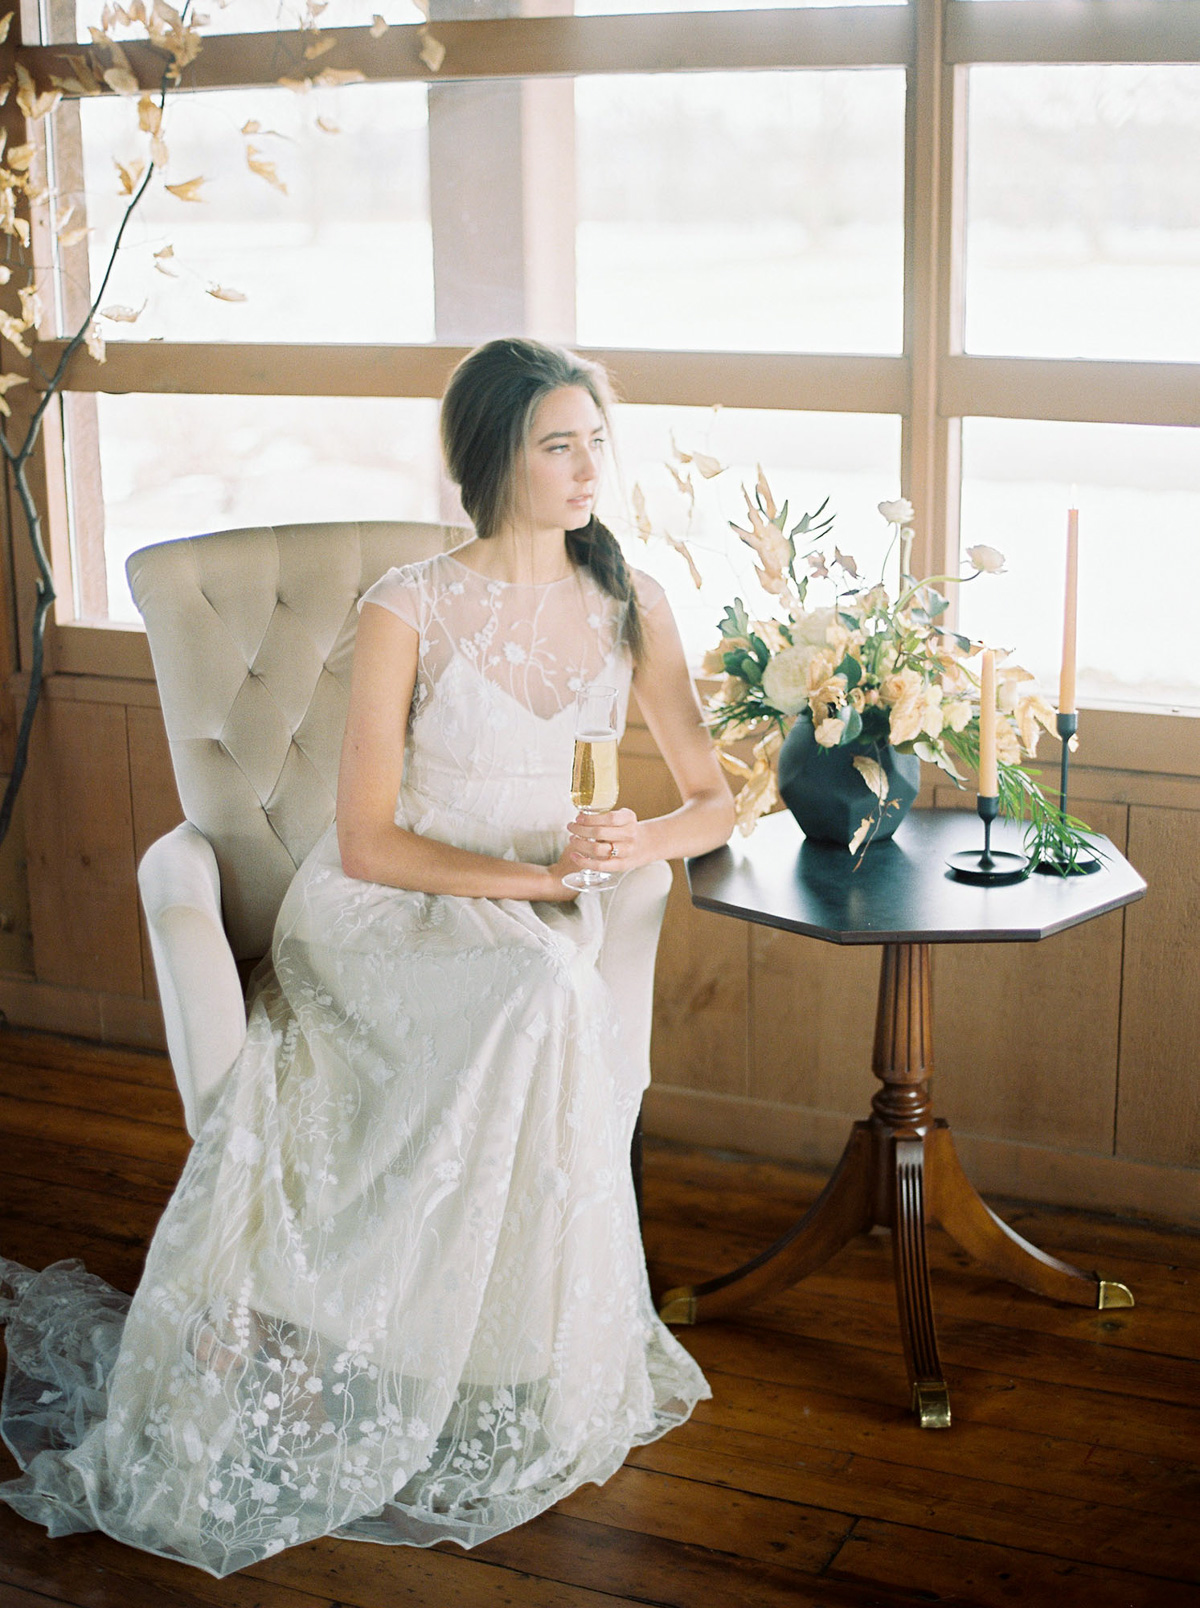 will-reid-photo-vineyard-bride-swish-list-kurtz-orchards-market-niagara-on-the-lake-wedding-editorial-37.jpg